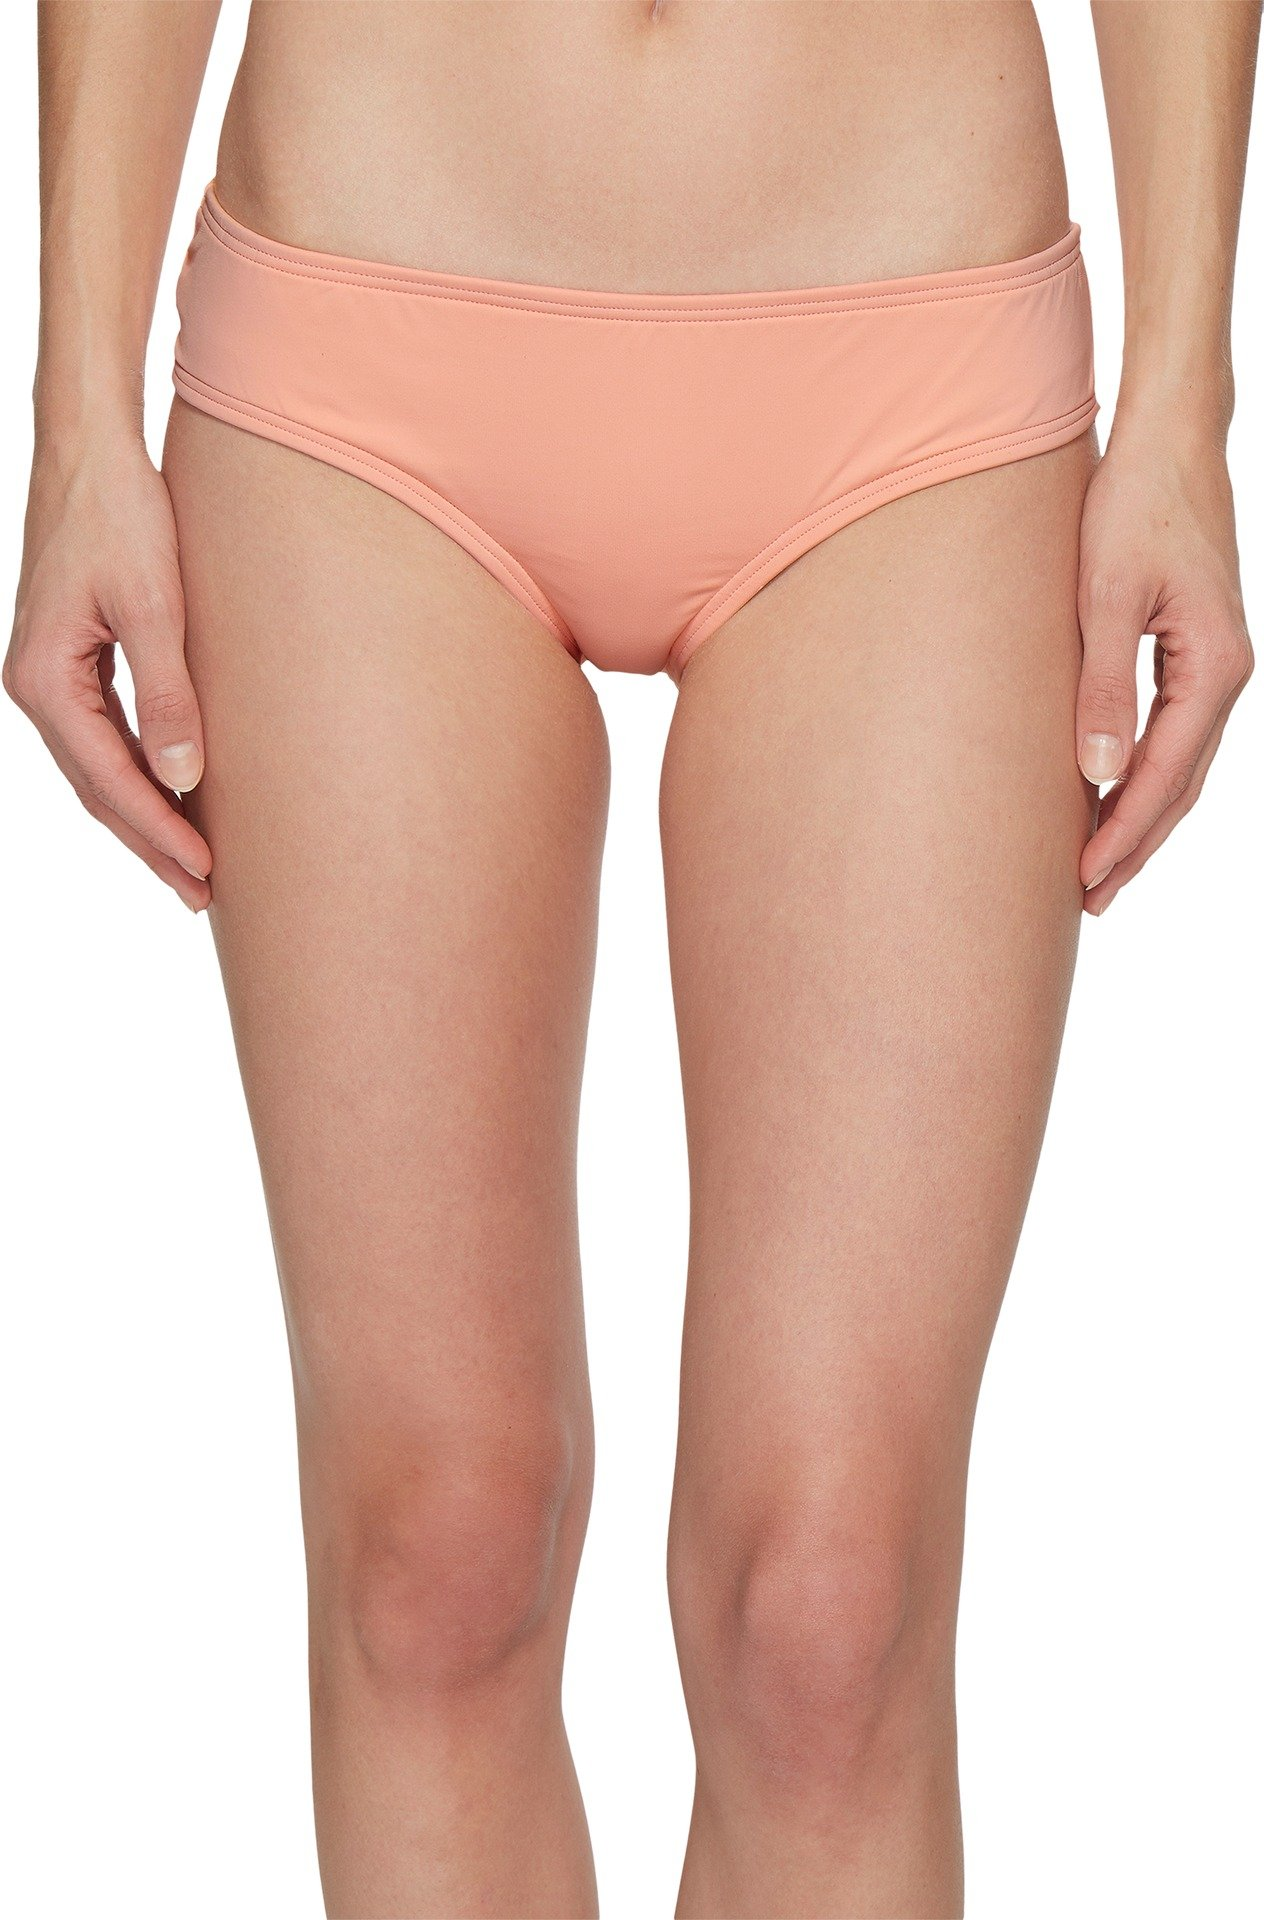 Vince Camuto Women's Sea scallops Shirred Smooth Fit Cheeky Bikini Bottoms Penoy Small